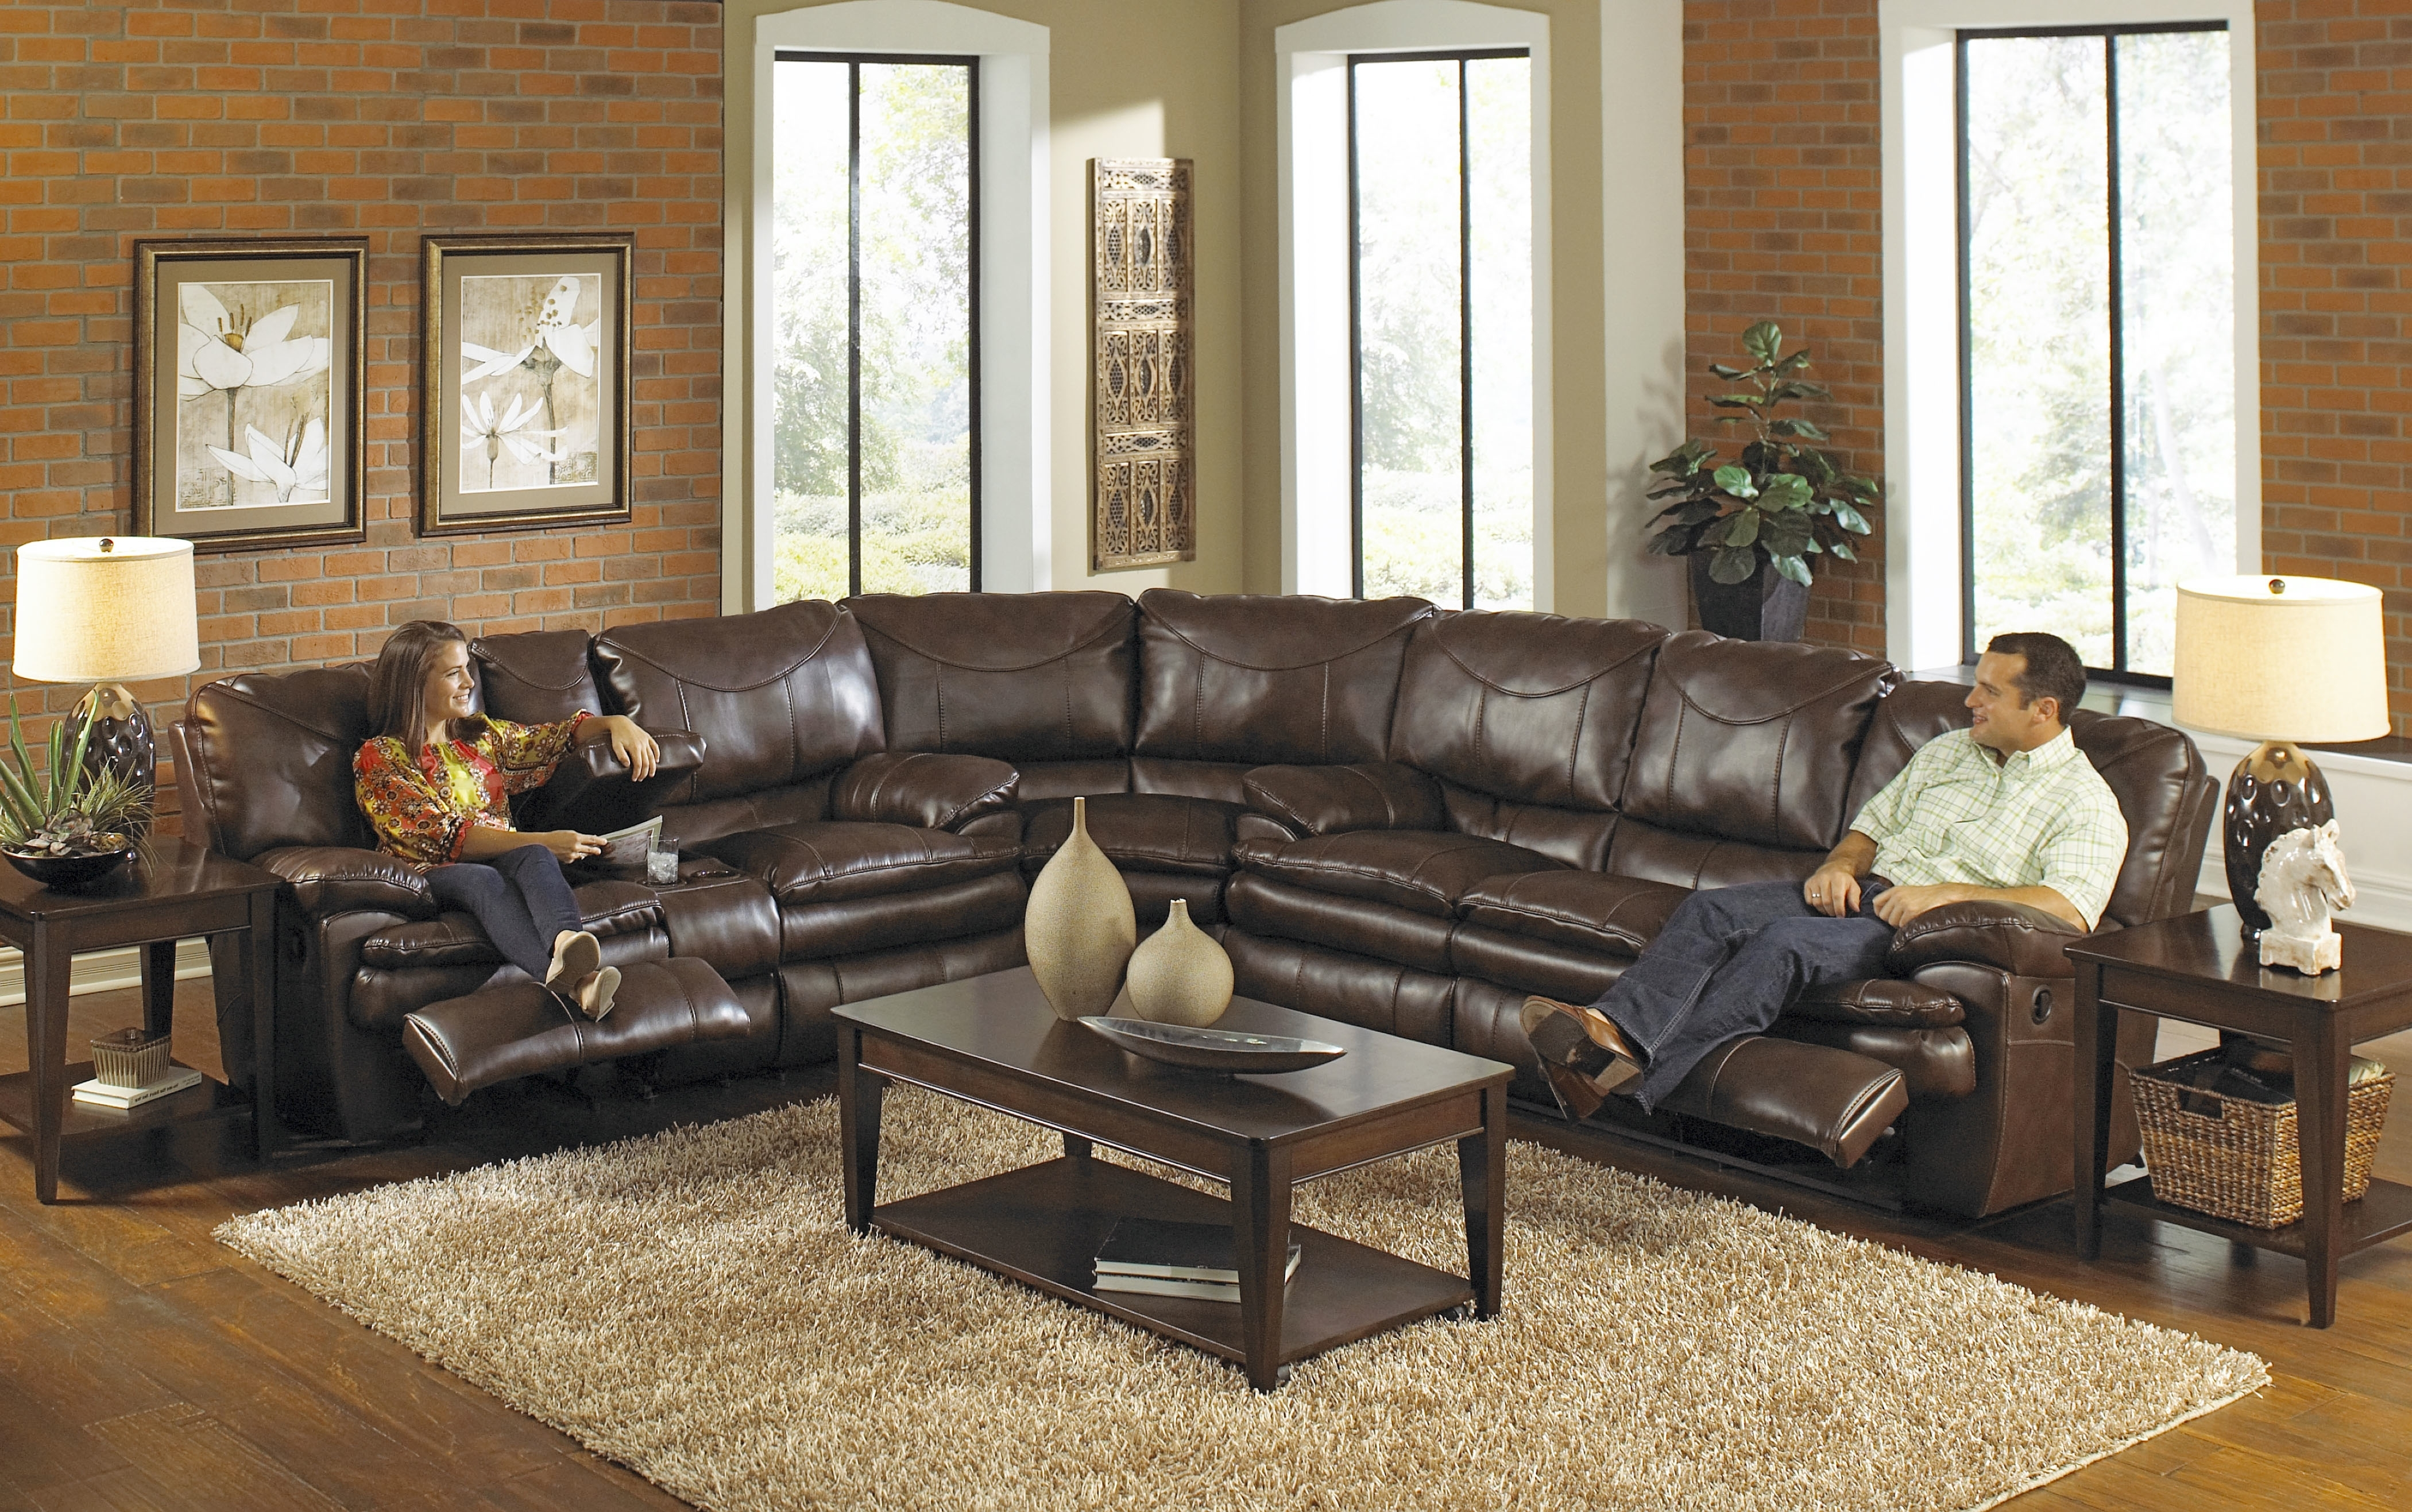 Famous Buy Large Sectional Sofas Perfect For Your Large Living Room Within Leather Recliner Sectional Sofas (View 3 of 20)